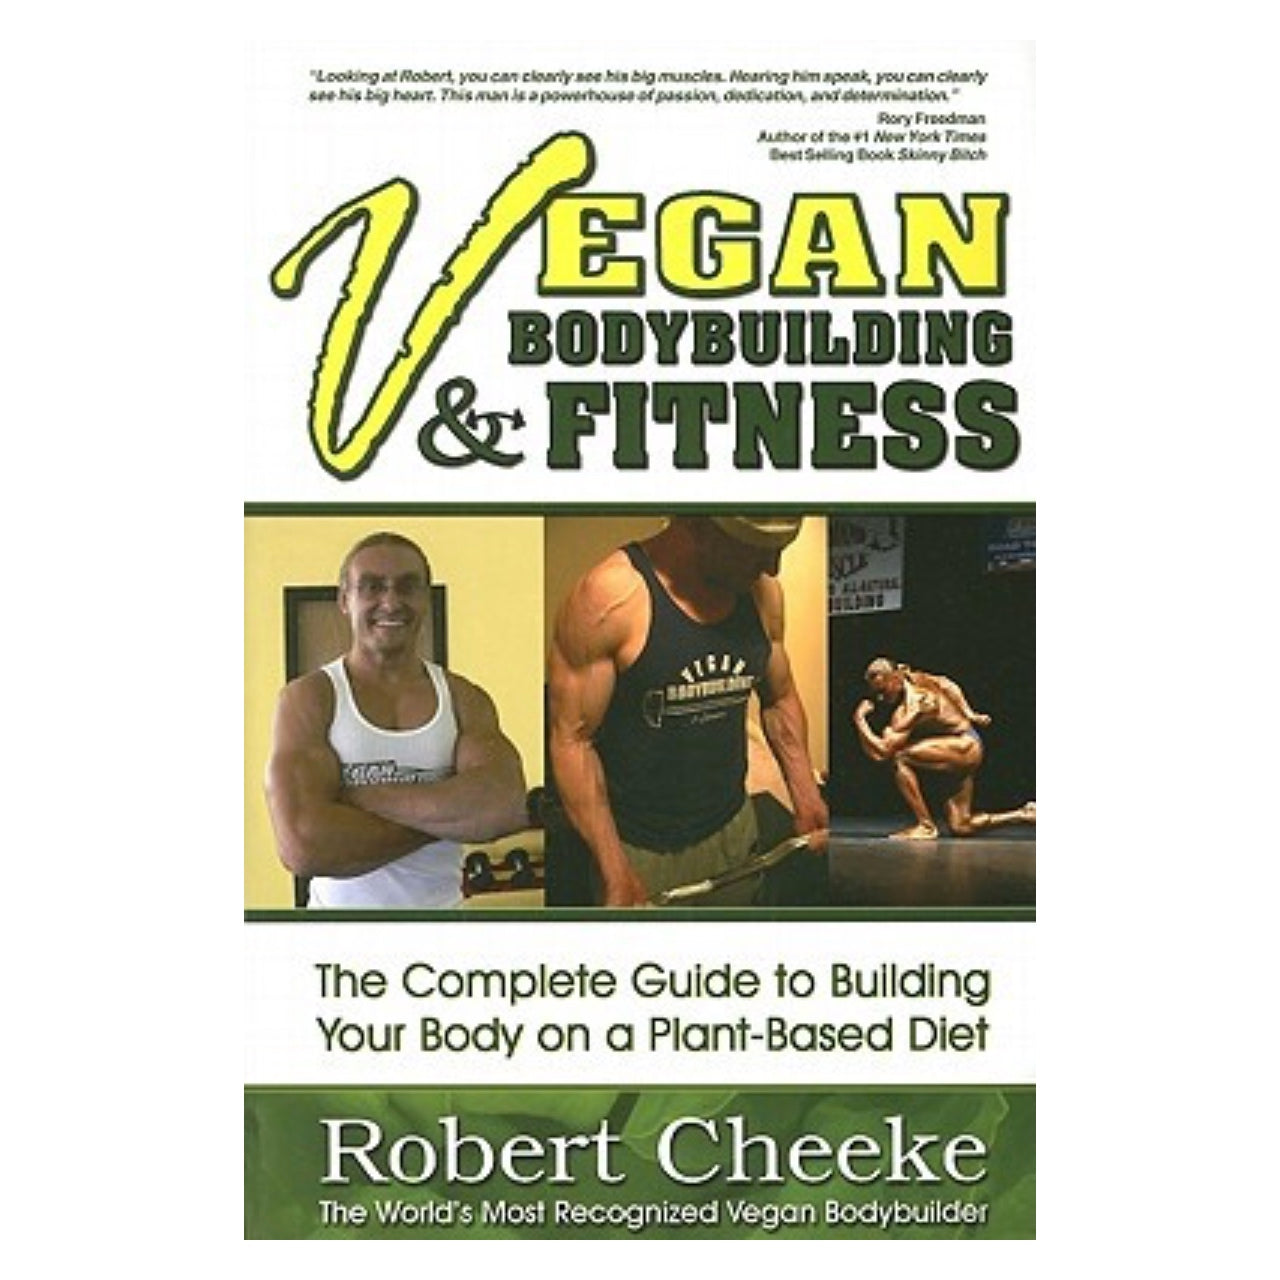 Vegan Bodybuilding & Fitness